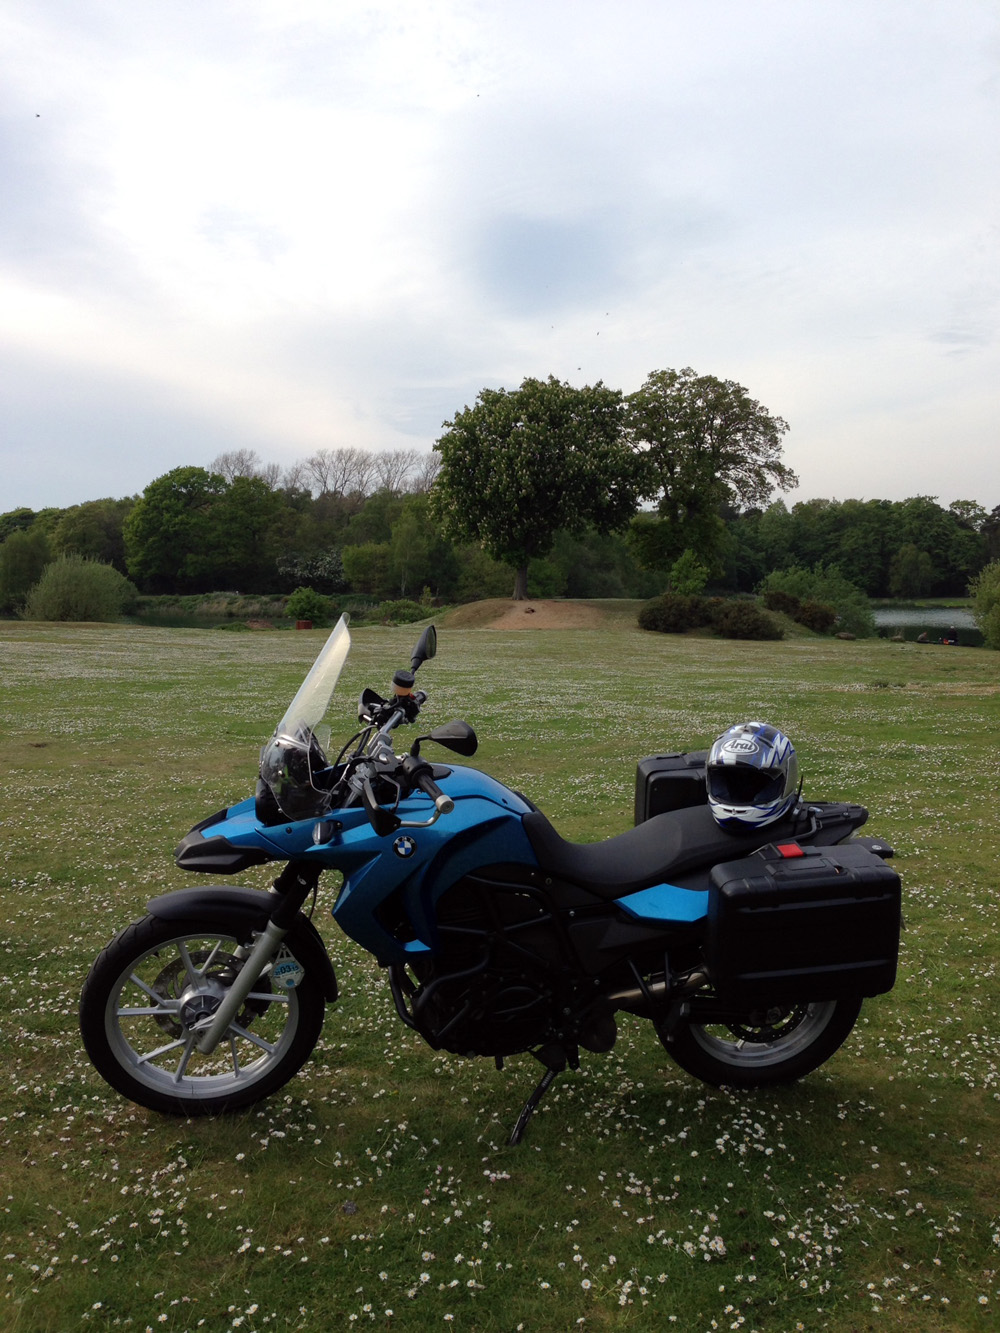 05 May - F650GS in the Countryside